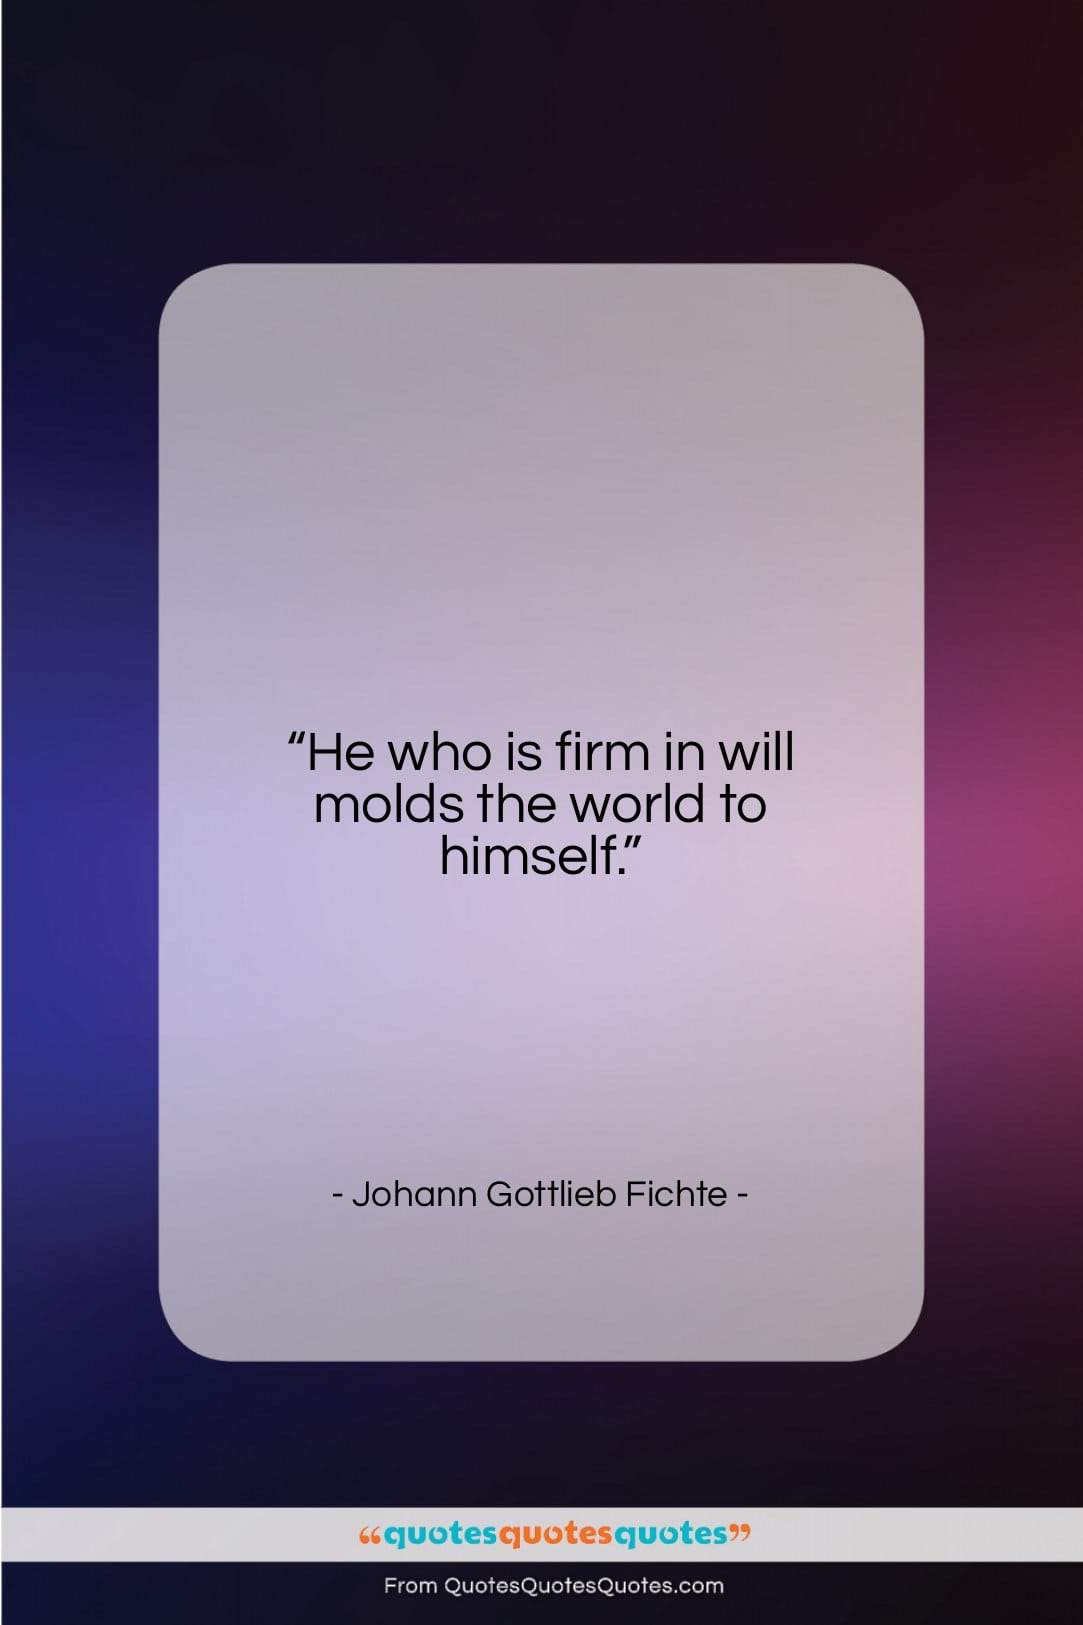 """Johann Gottlieb Fichte quote: """"He who is firm in will molds…""""- at QuotesQuotesQuotes.com"""